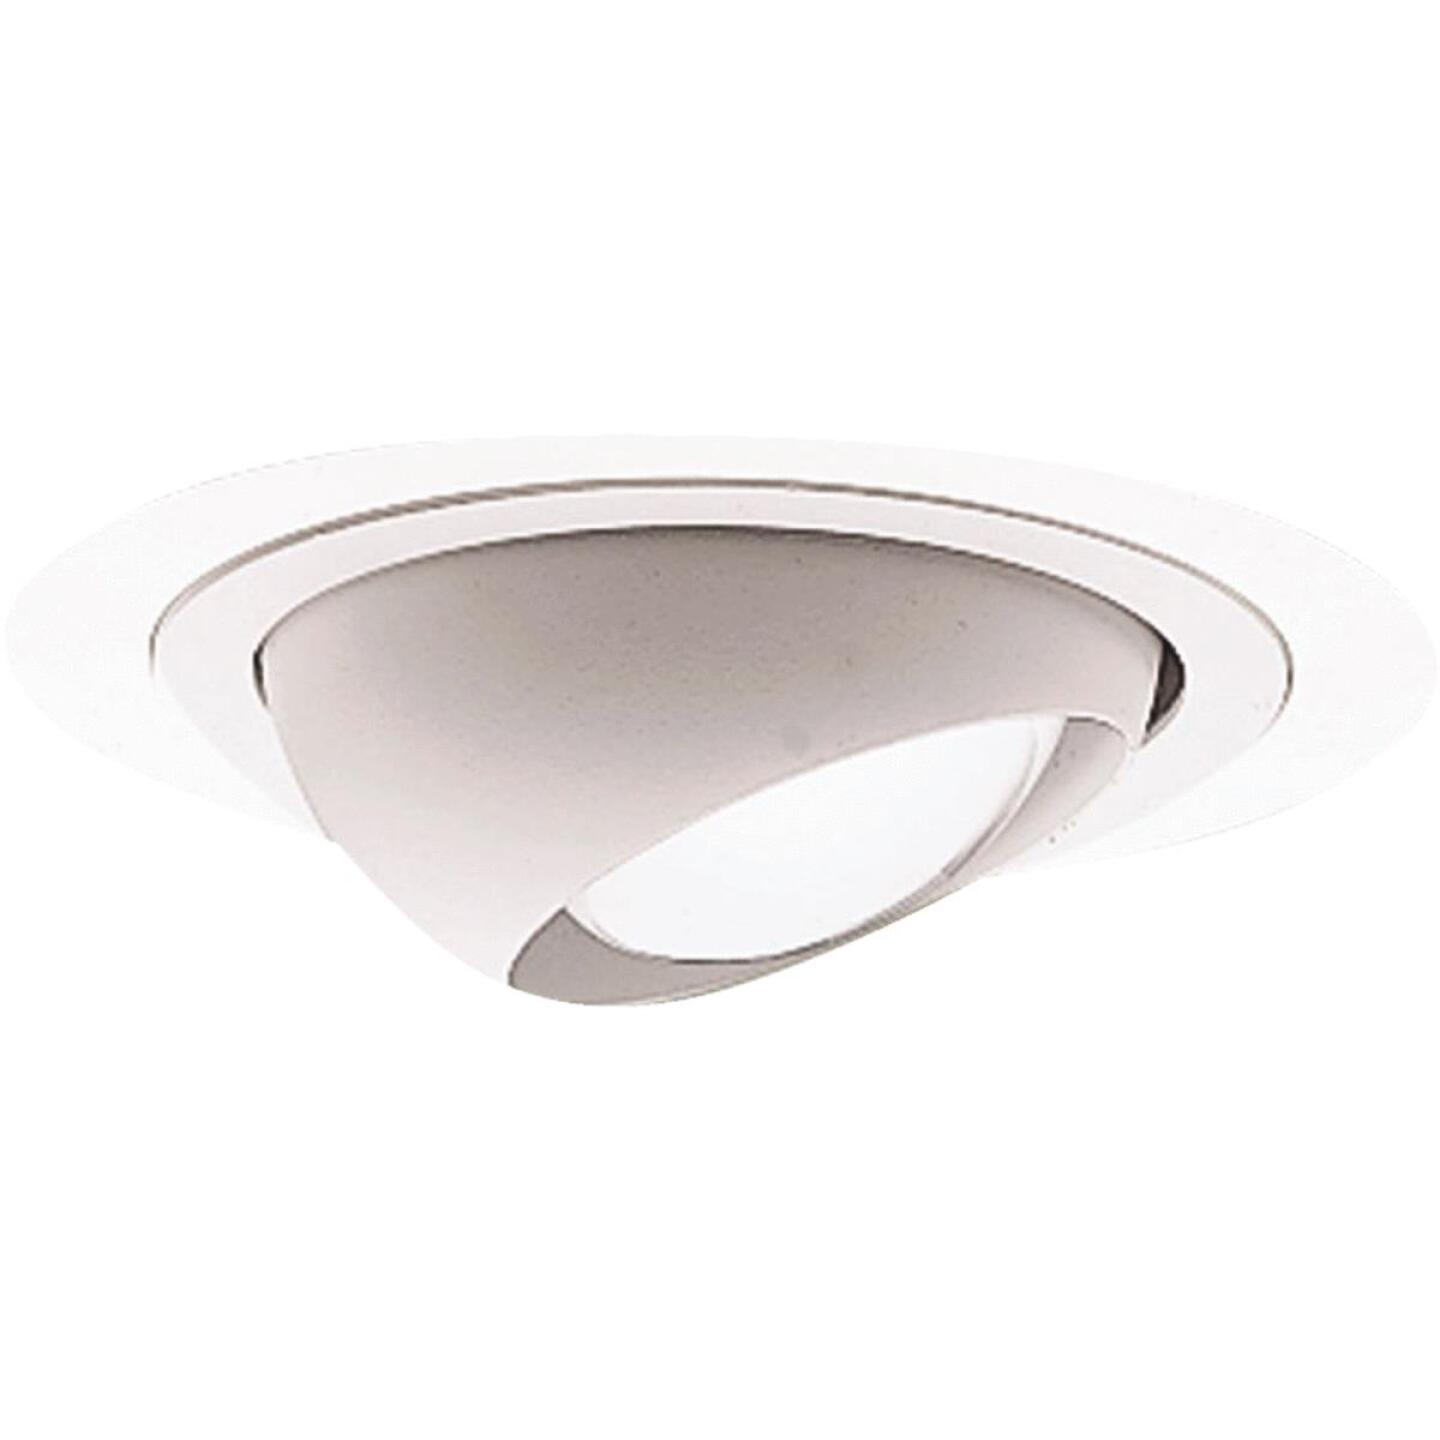 Halo 4 In. White Eyeball Recessed Fixture Trim Image 1